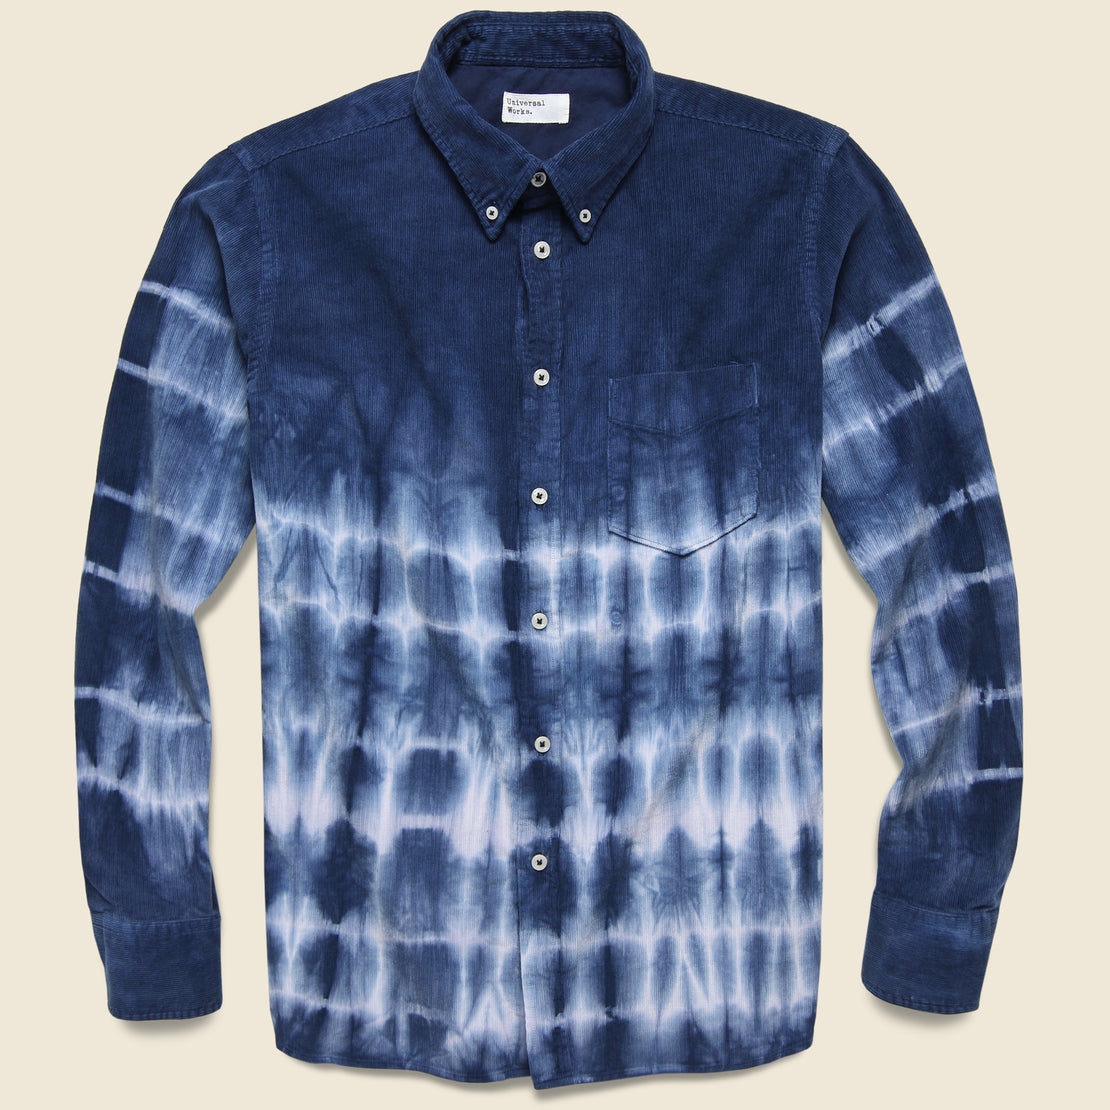 Universal Works Cord Everyday Shirt - Indigo Tie Dye